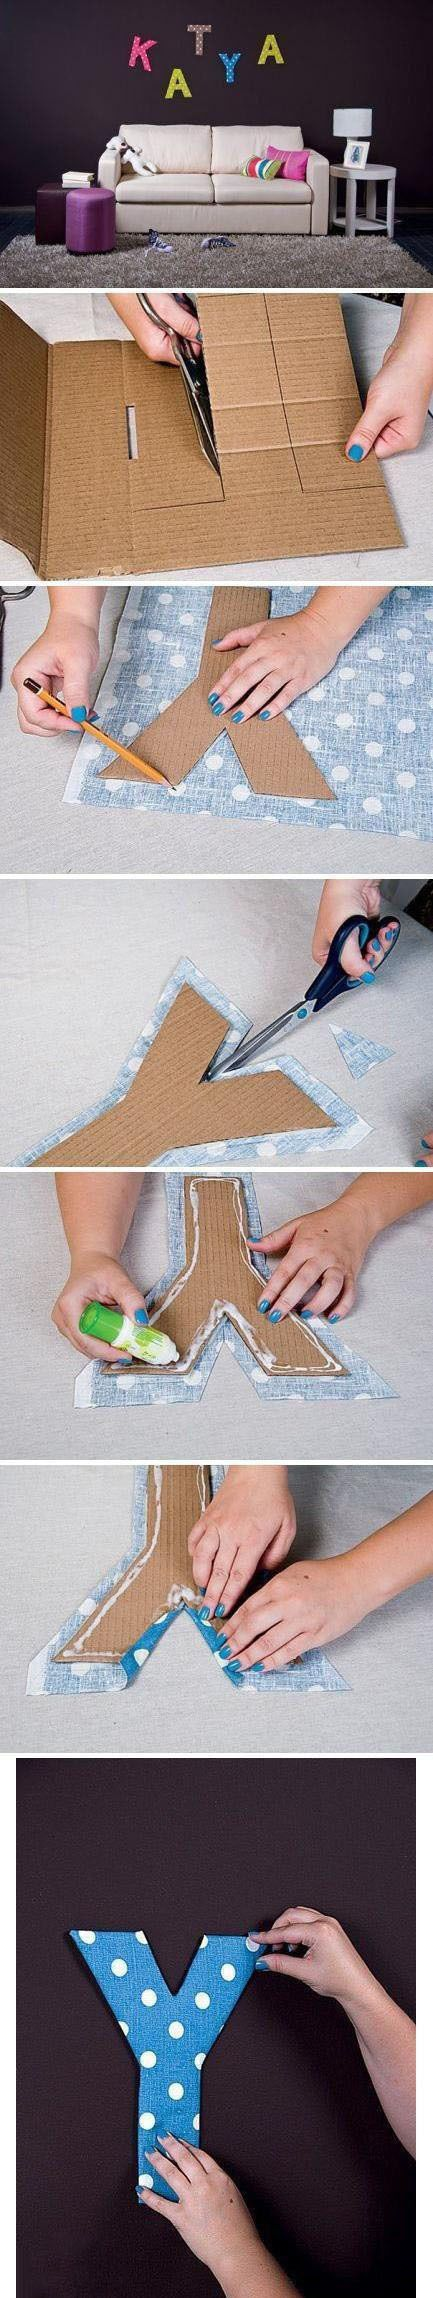 Diy Projects: Fabric and Cardboard Wall Letters